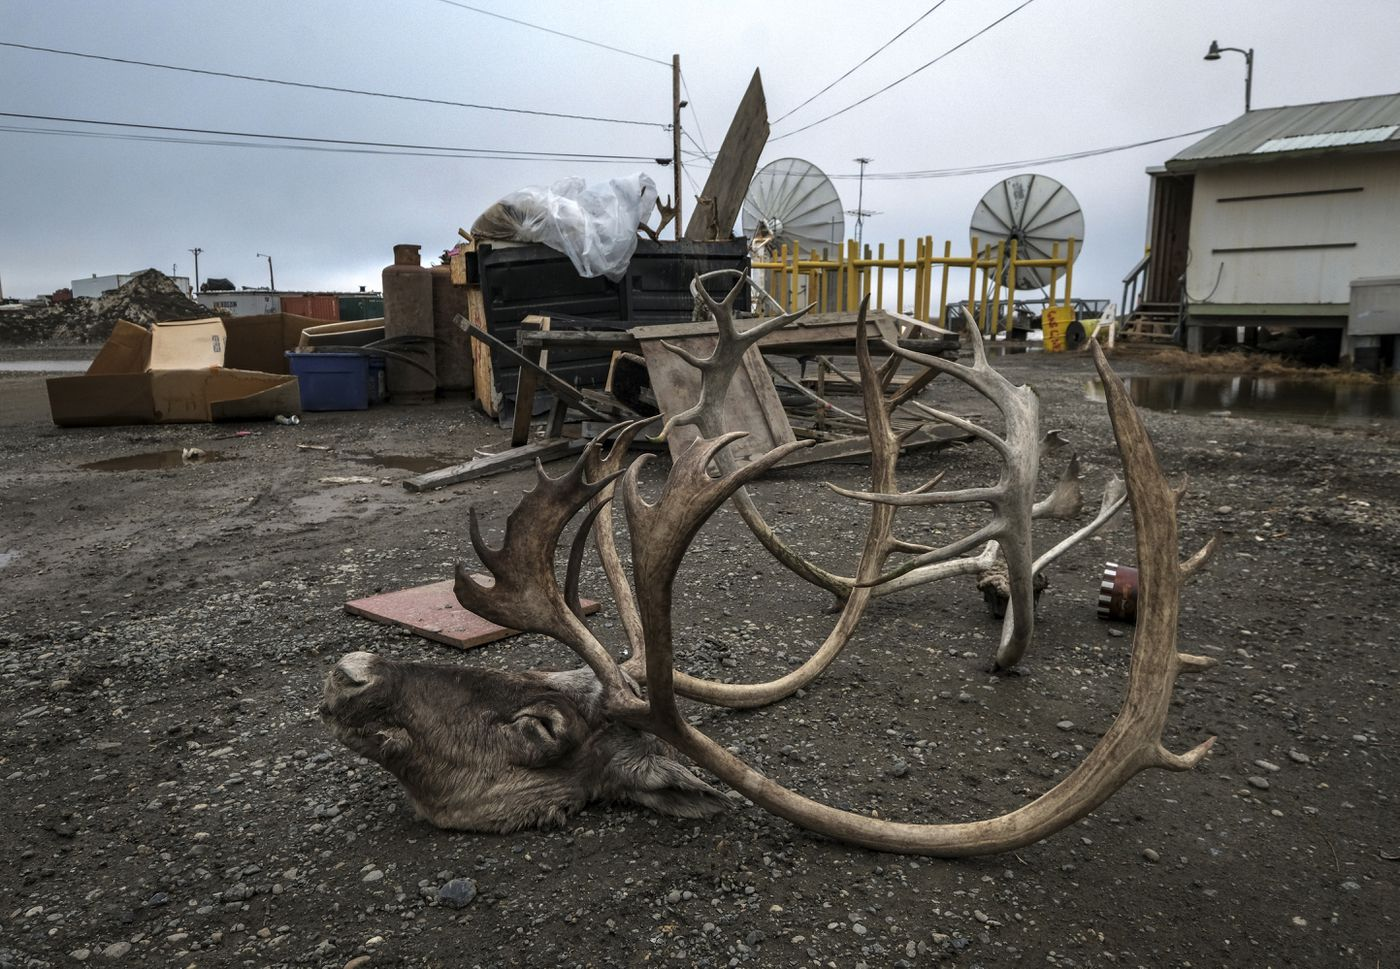 Remains of a caribou outside a youth center in Nuiqsut. (Washington Post photo by Bonnie Jo Mount)